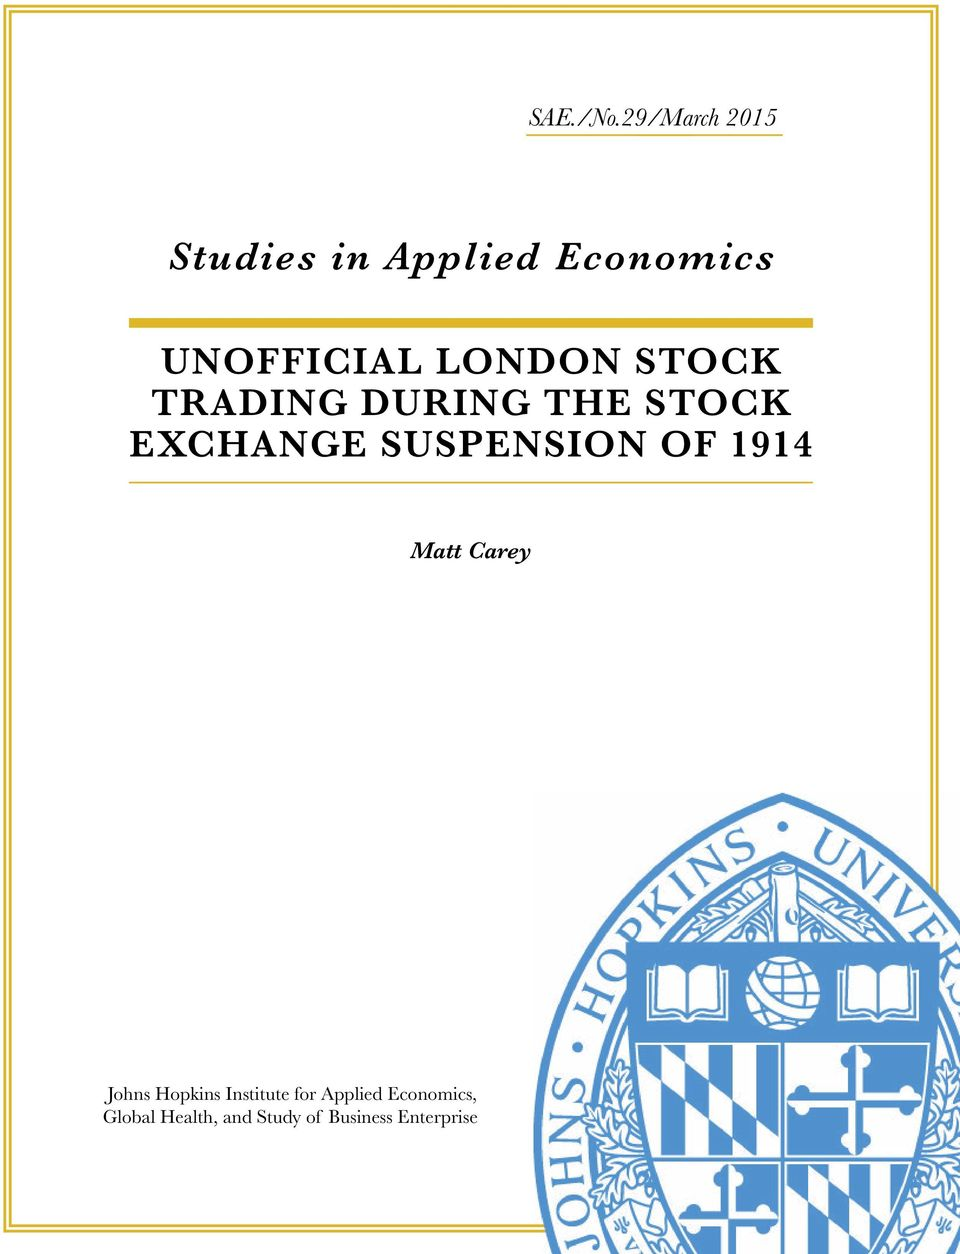 london Stock trading during the Stock exchange SUSpenSion